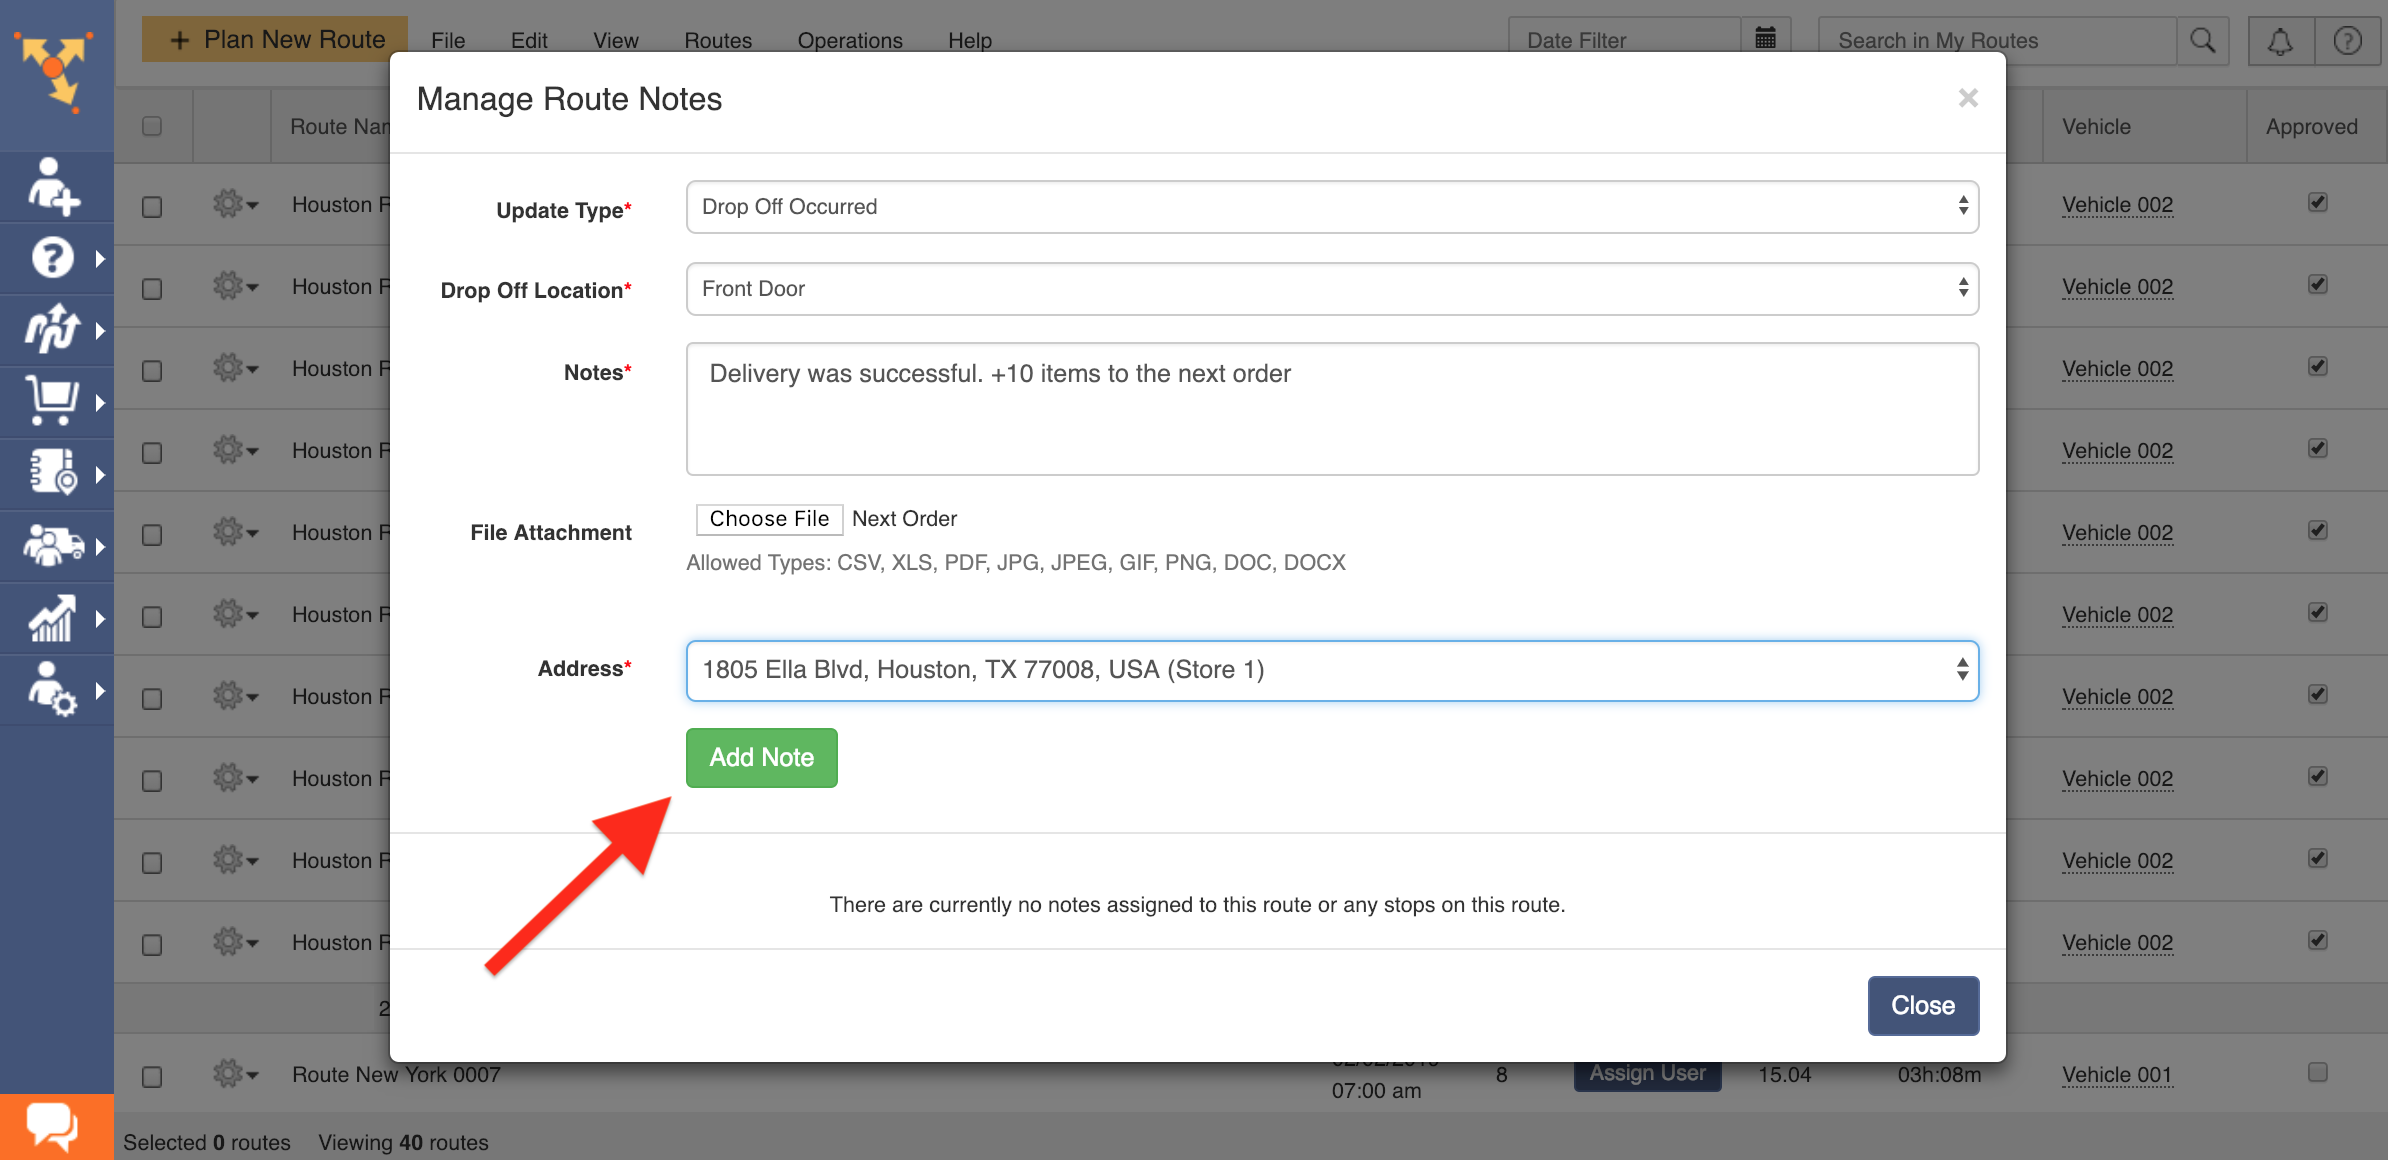 Showing how to use Route4Me's Add Note feature